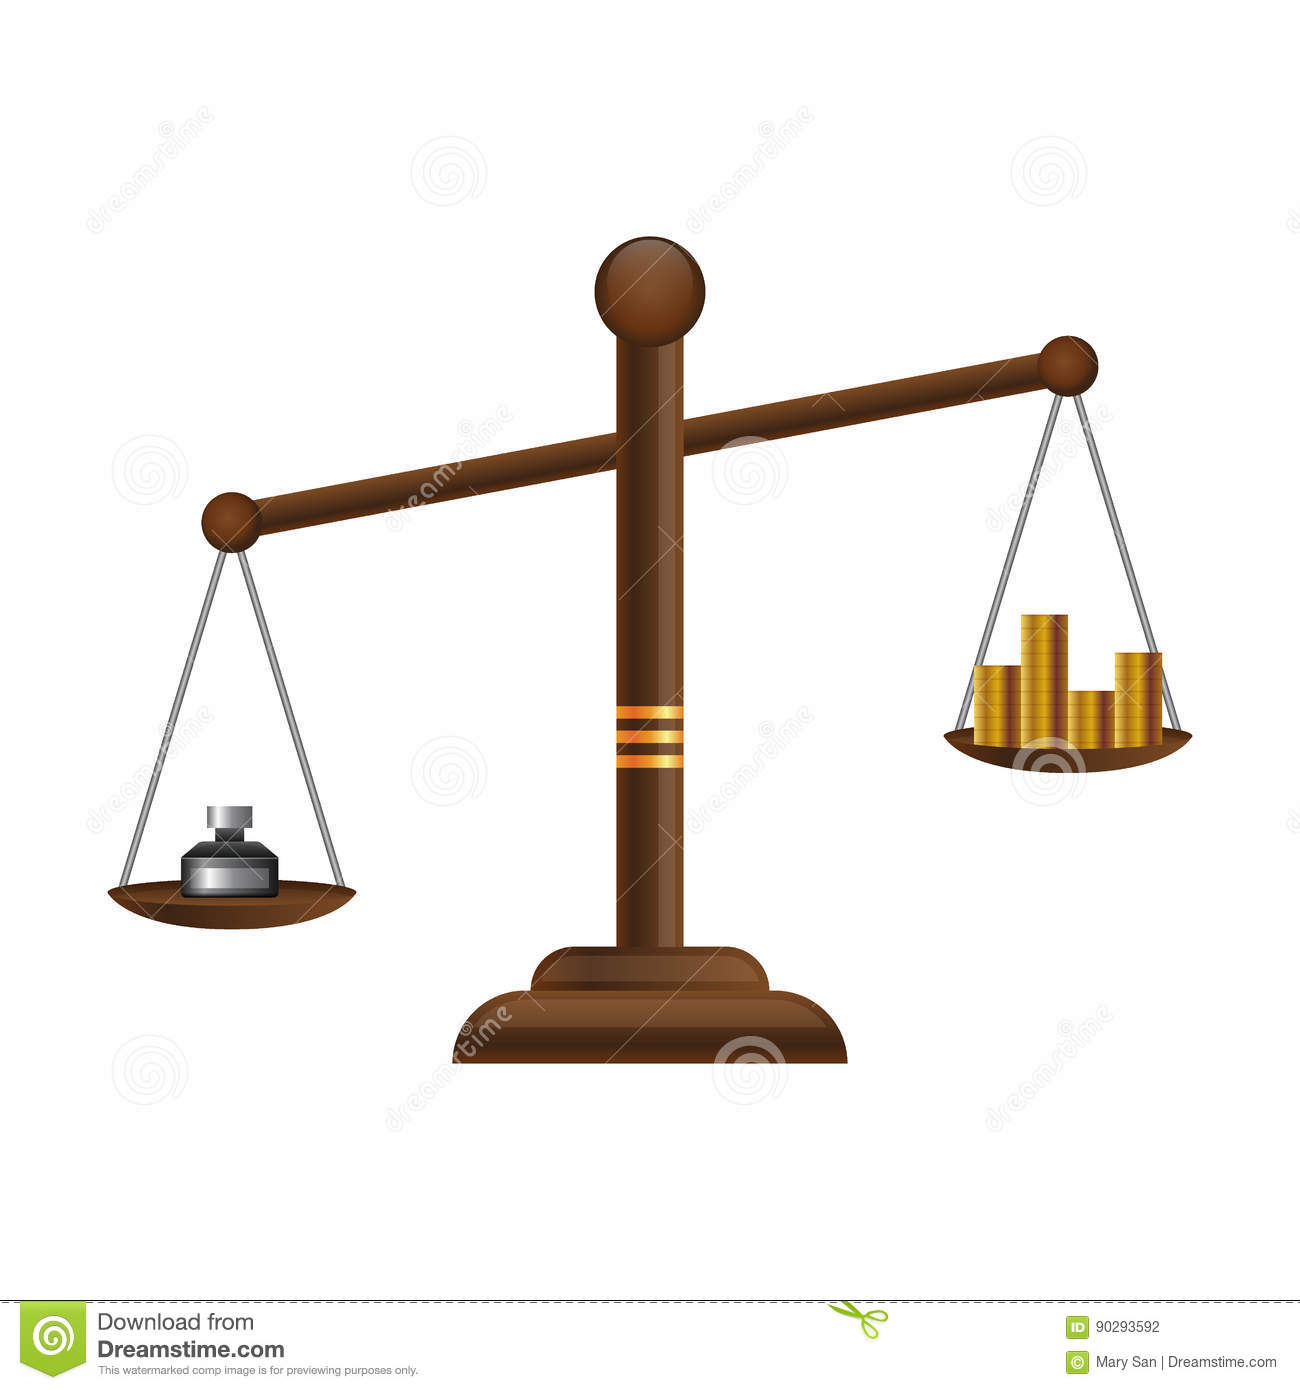 justice scales icon law balance symbol libra flat design with gold rh dreamstime com